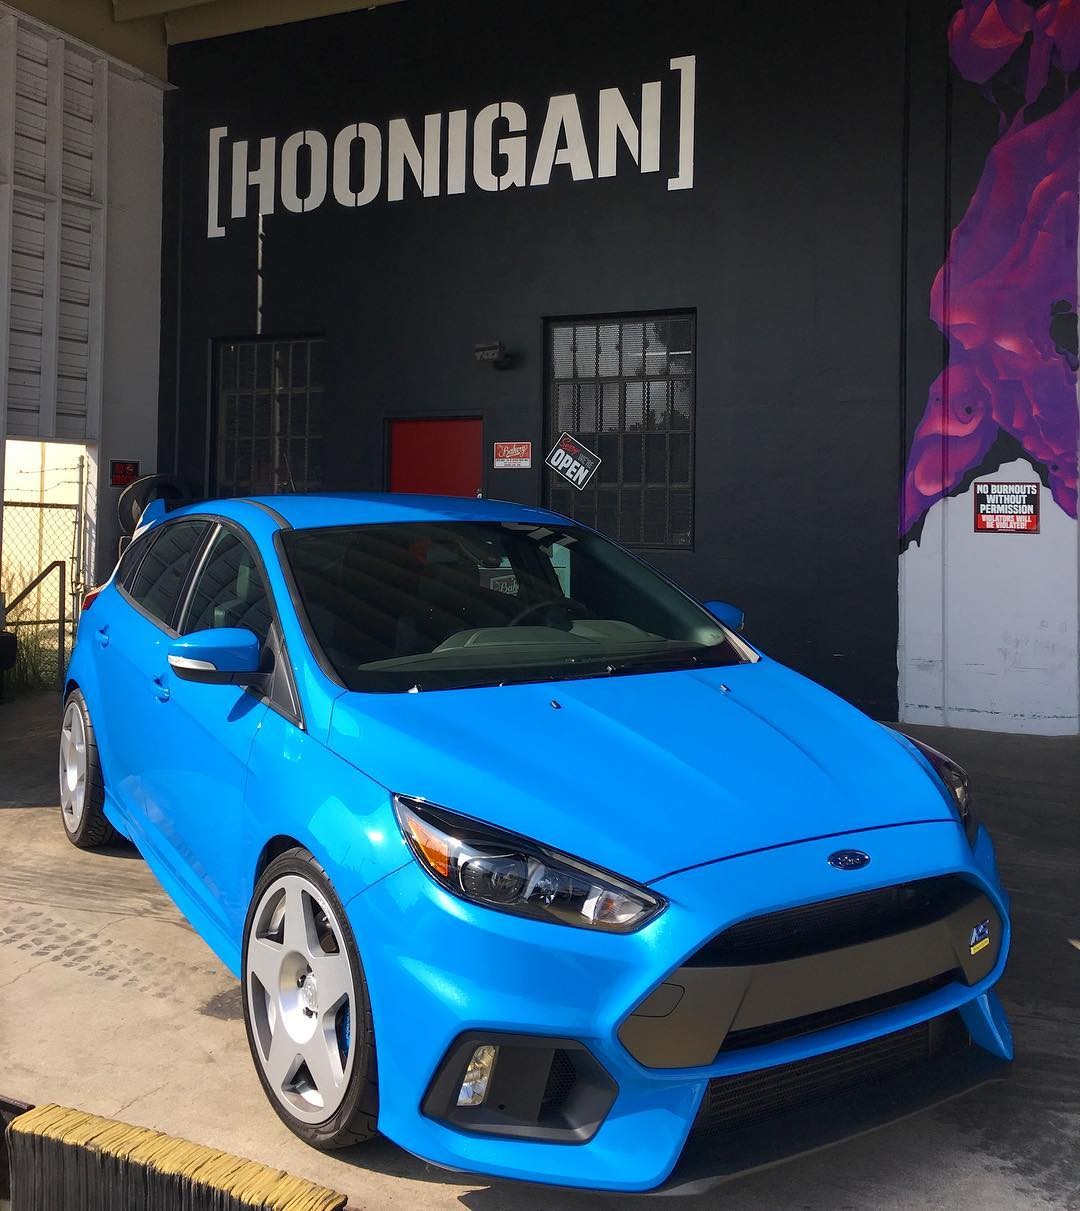 HNGN CLUB DAYS: You all been asking when the next one is, so mark your calendars - next Sat (Oct 22nd) we've rounded up a Ford Focus RS and Fiesta ST squad to invade the Donut Garage, thanks to our buddy's at @mountune and @fifteen52!...